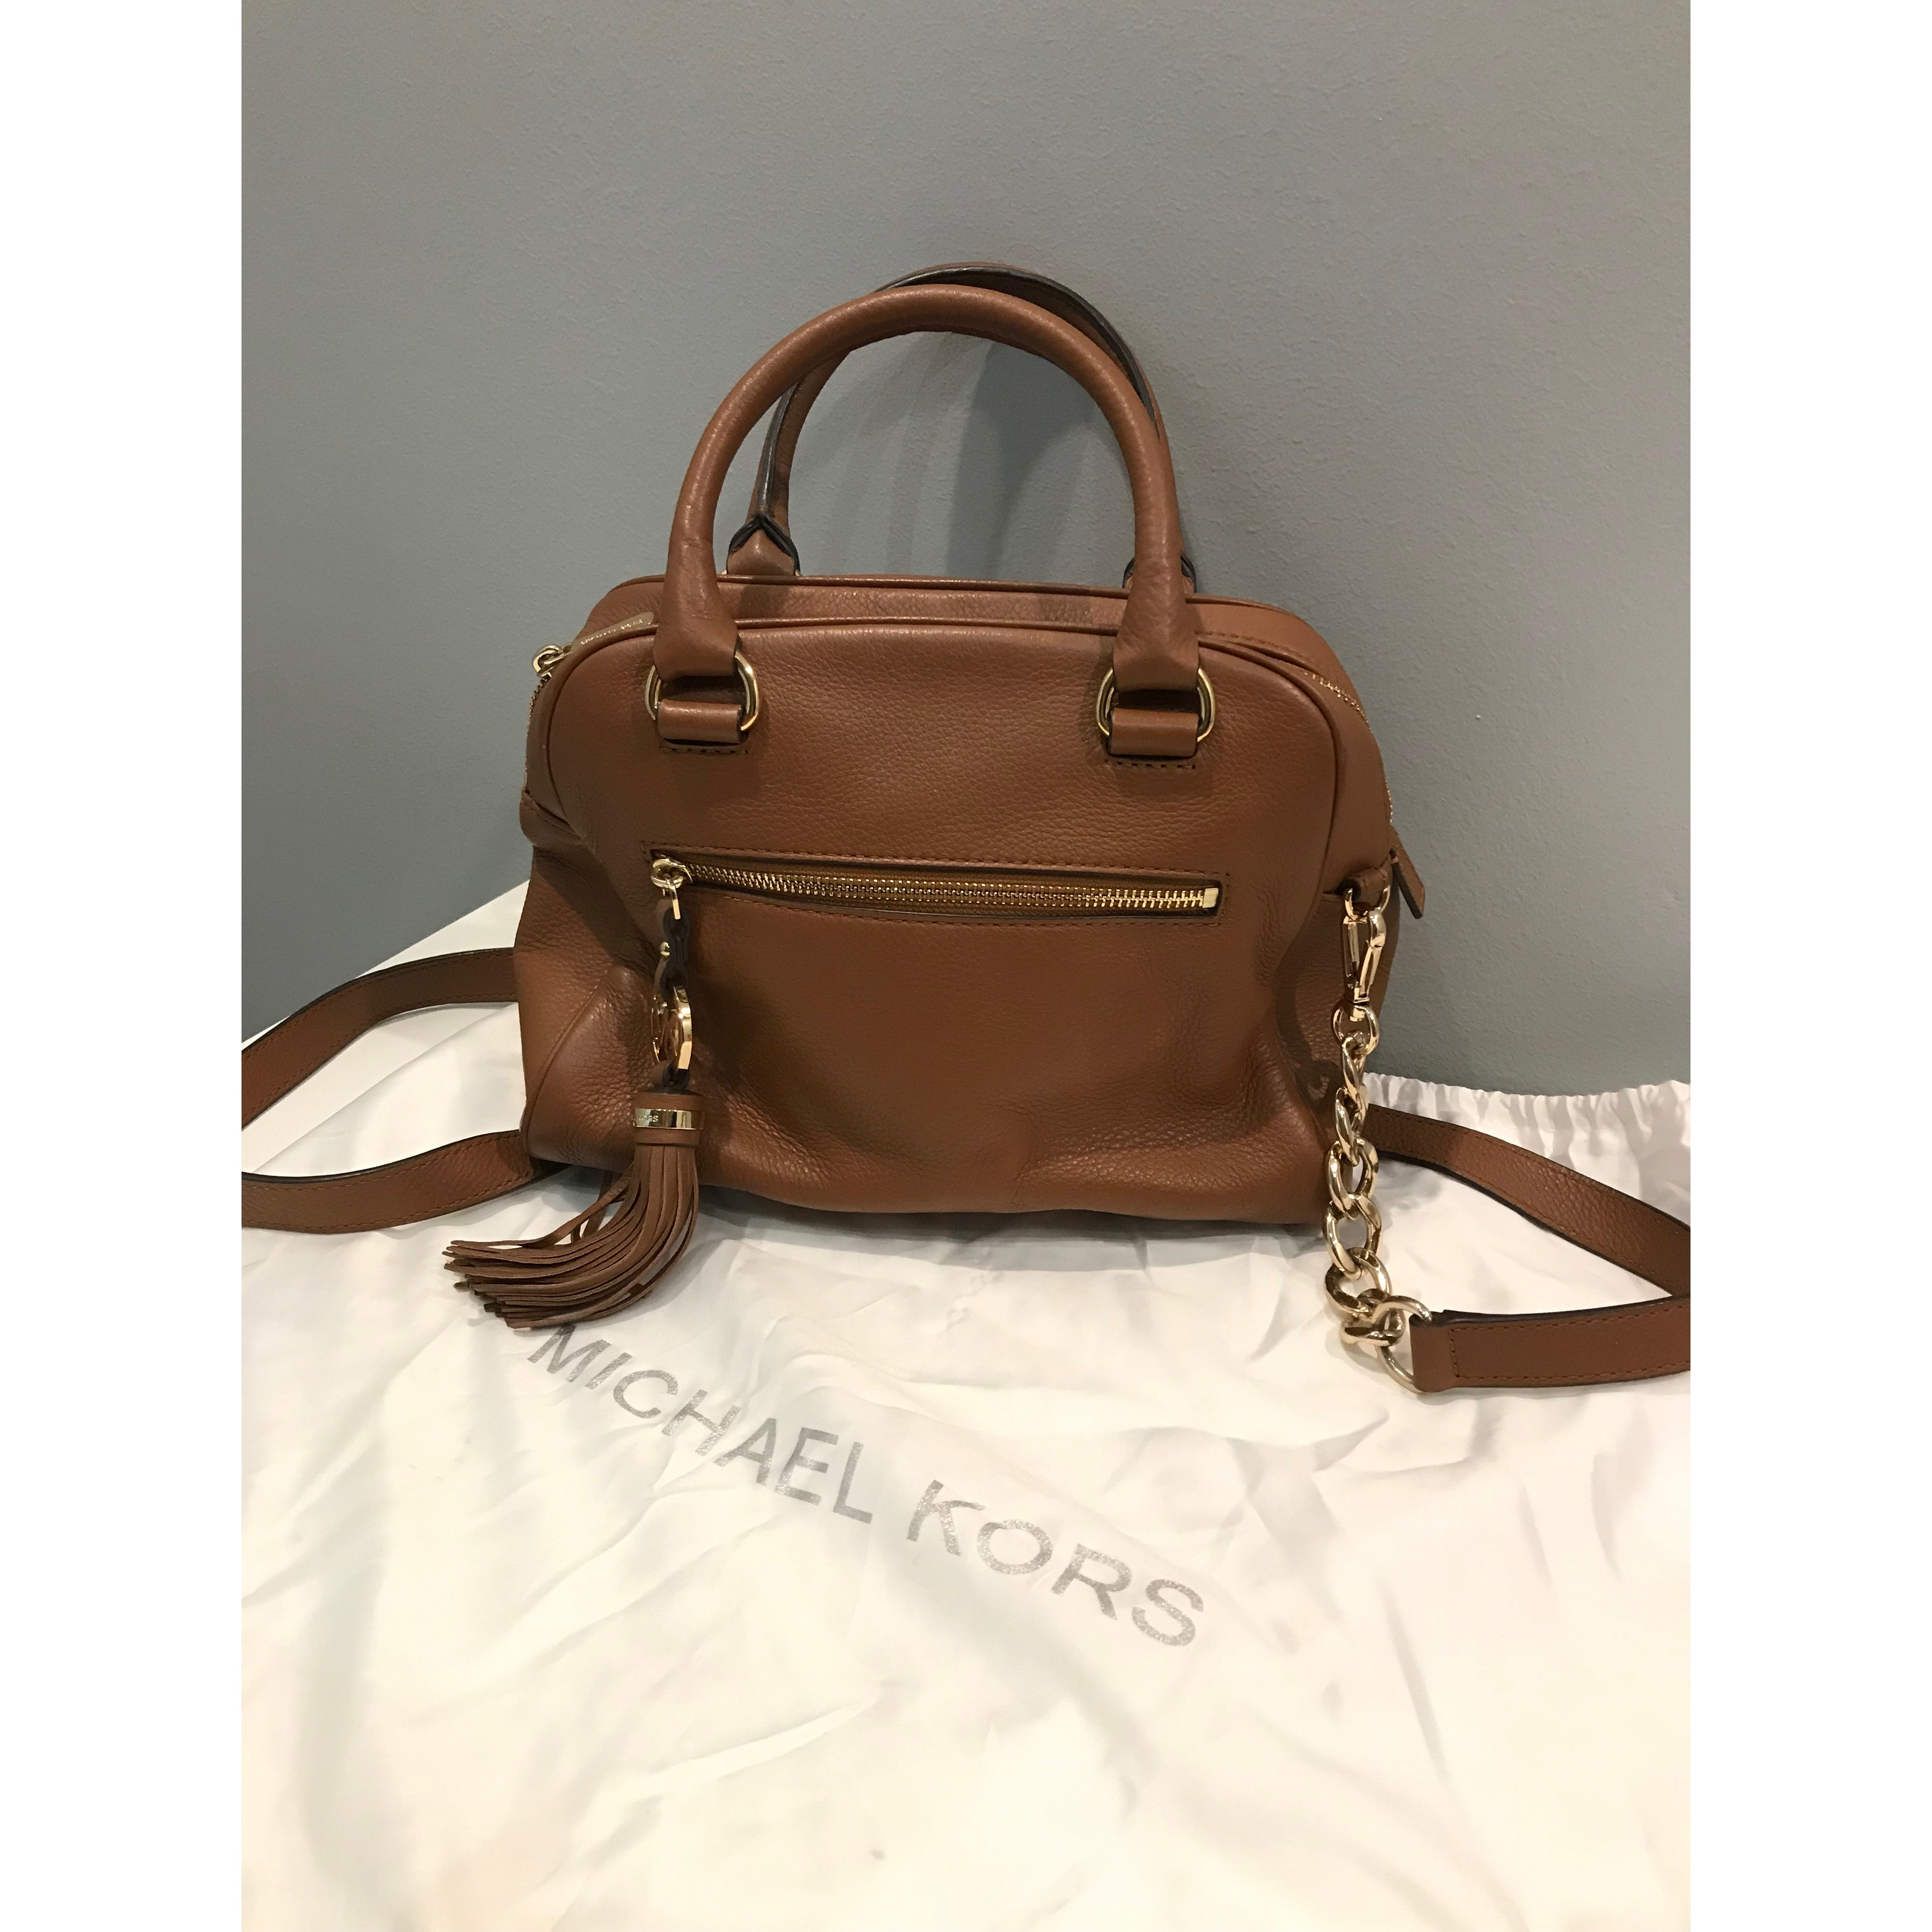 ff30f8d6408d Michael Kors handbag Condition   8.5 10 Color Material   caramel  brown leather rarely used